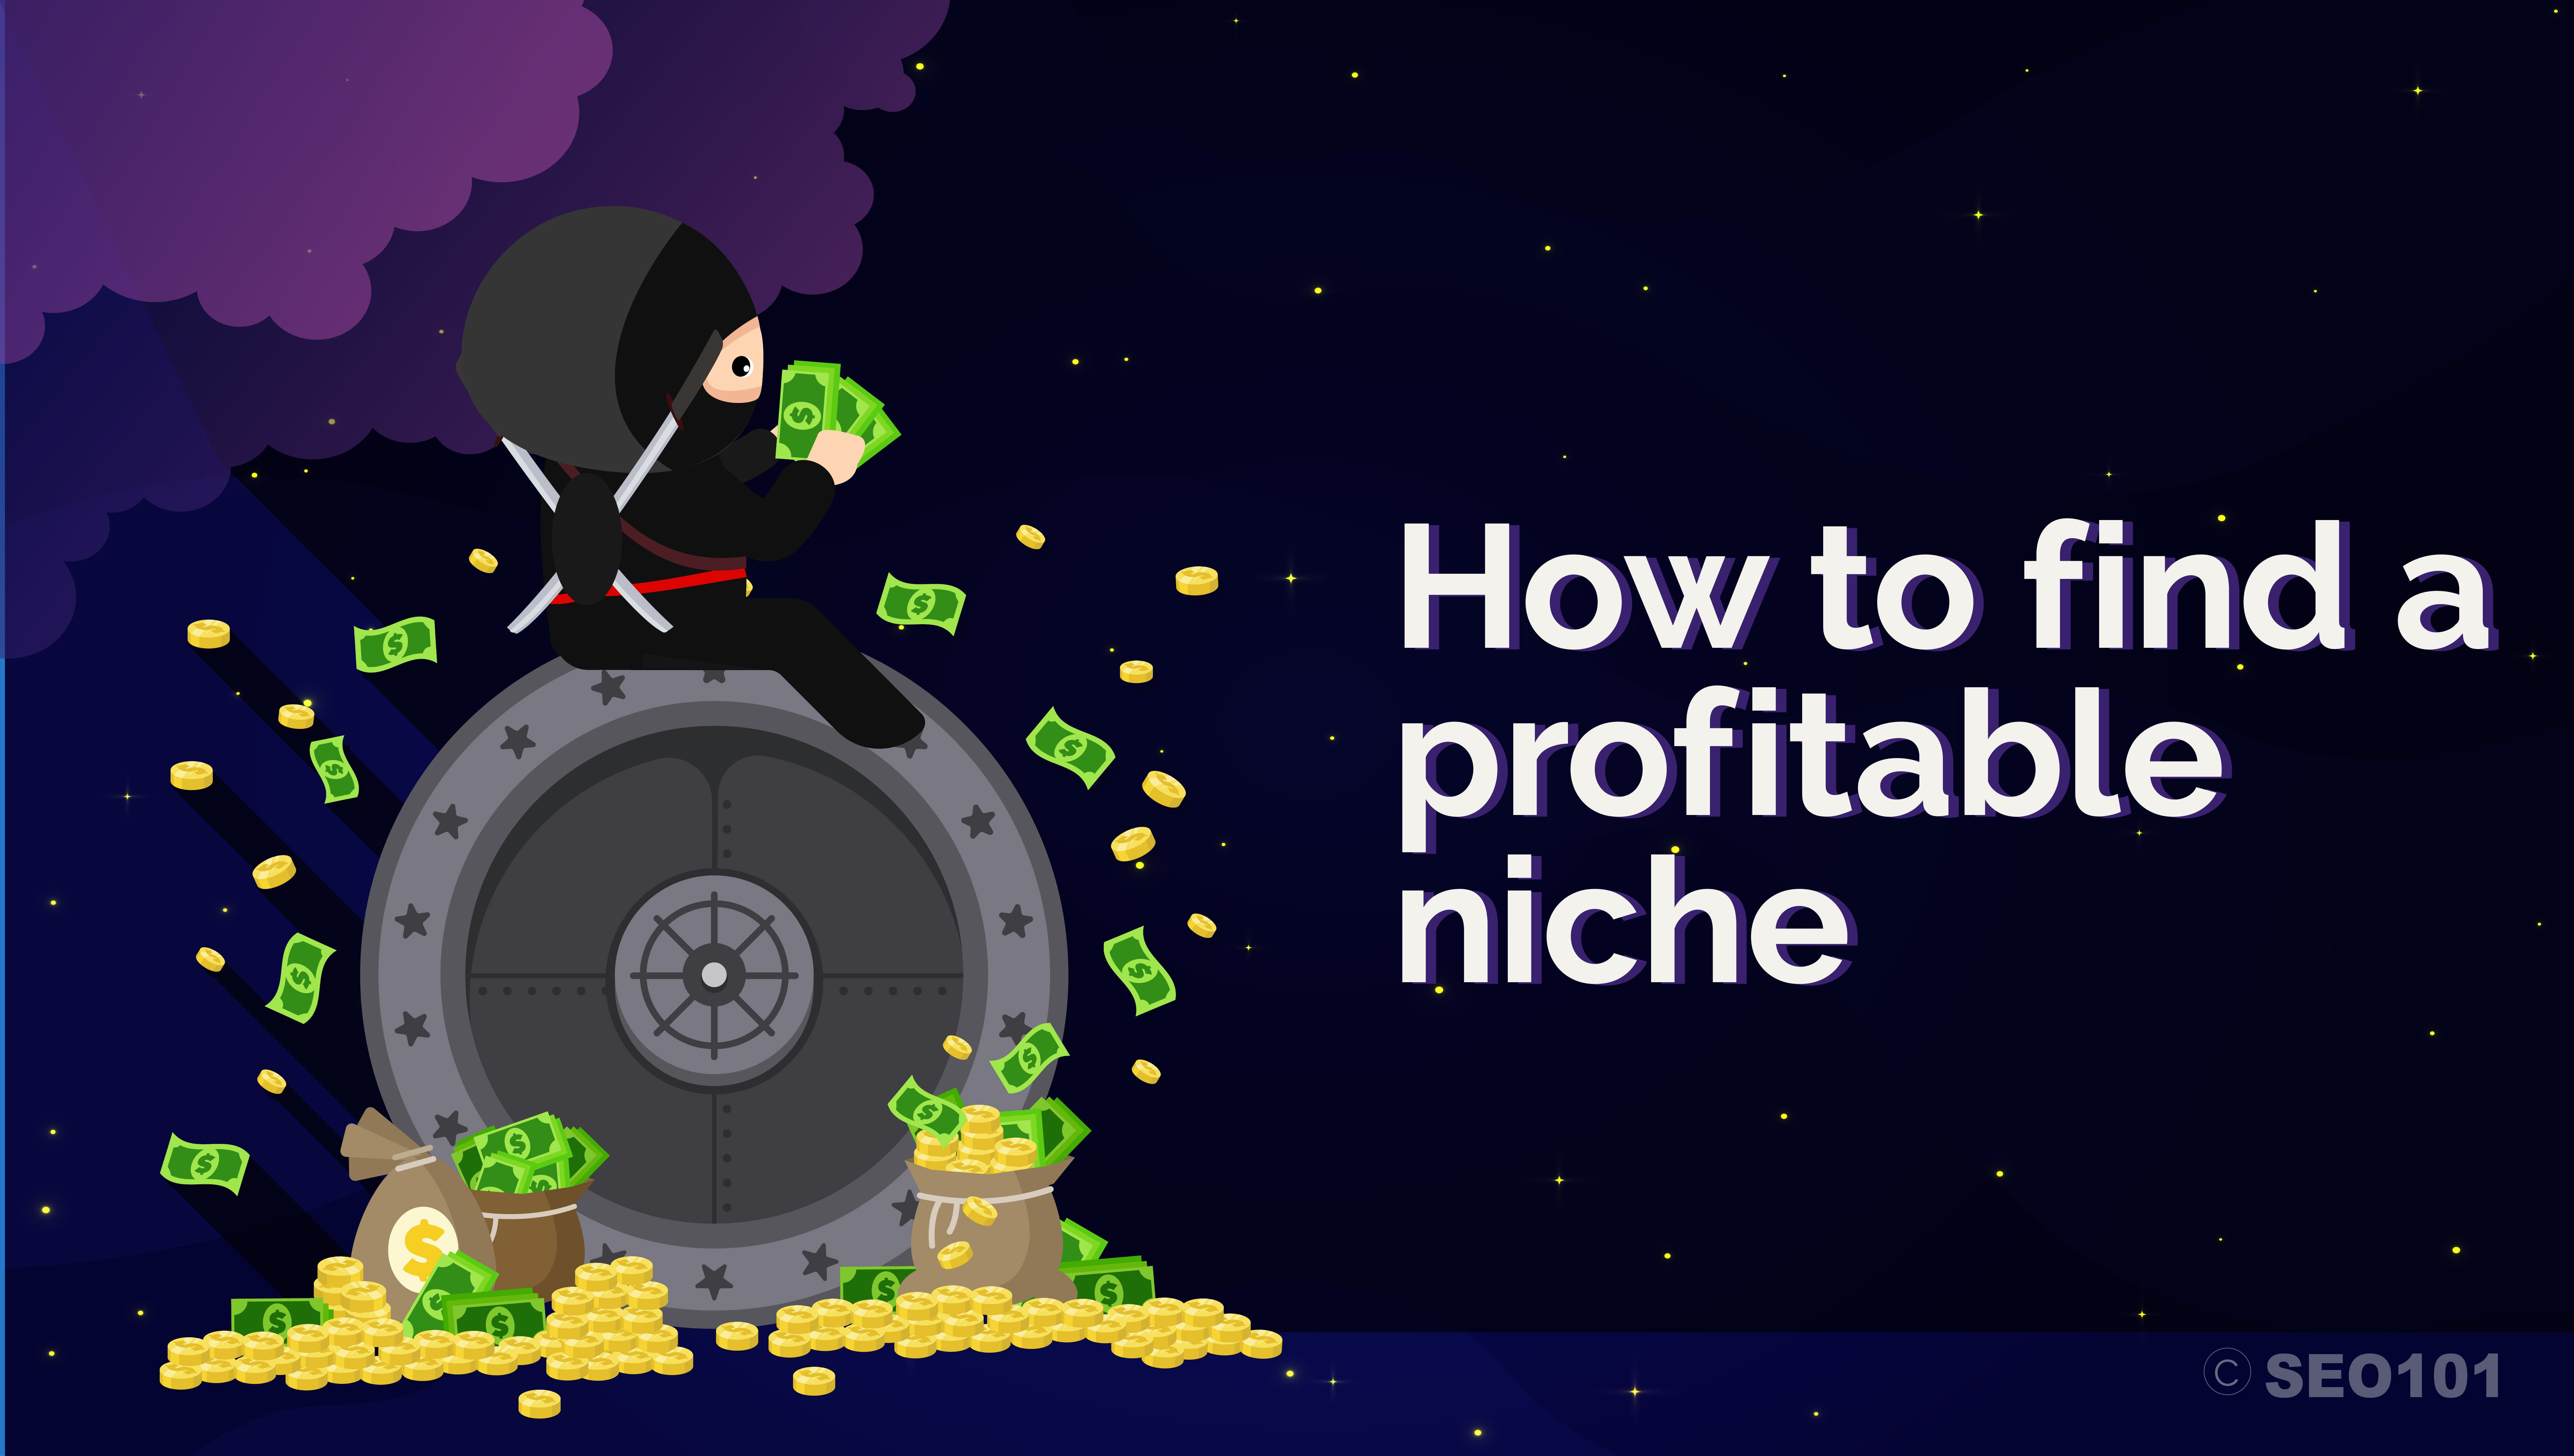 How To Find A Profitable Niche in 2019